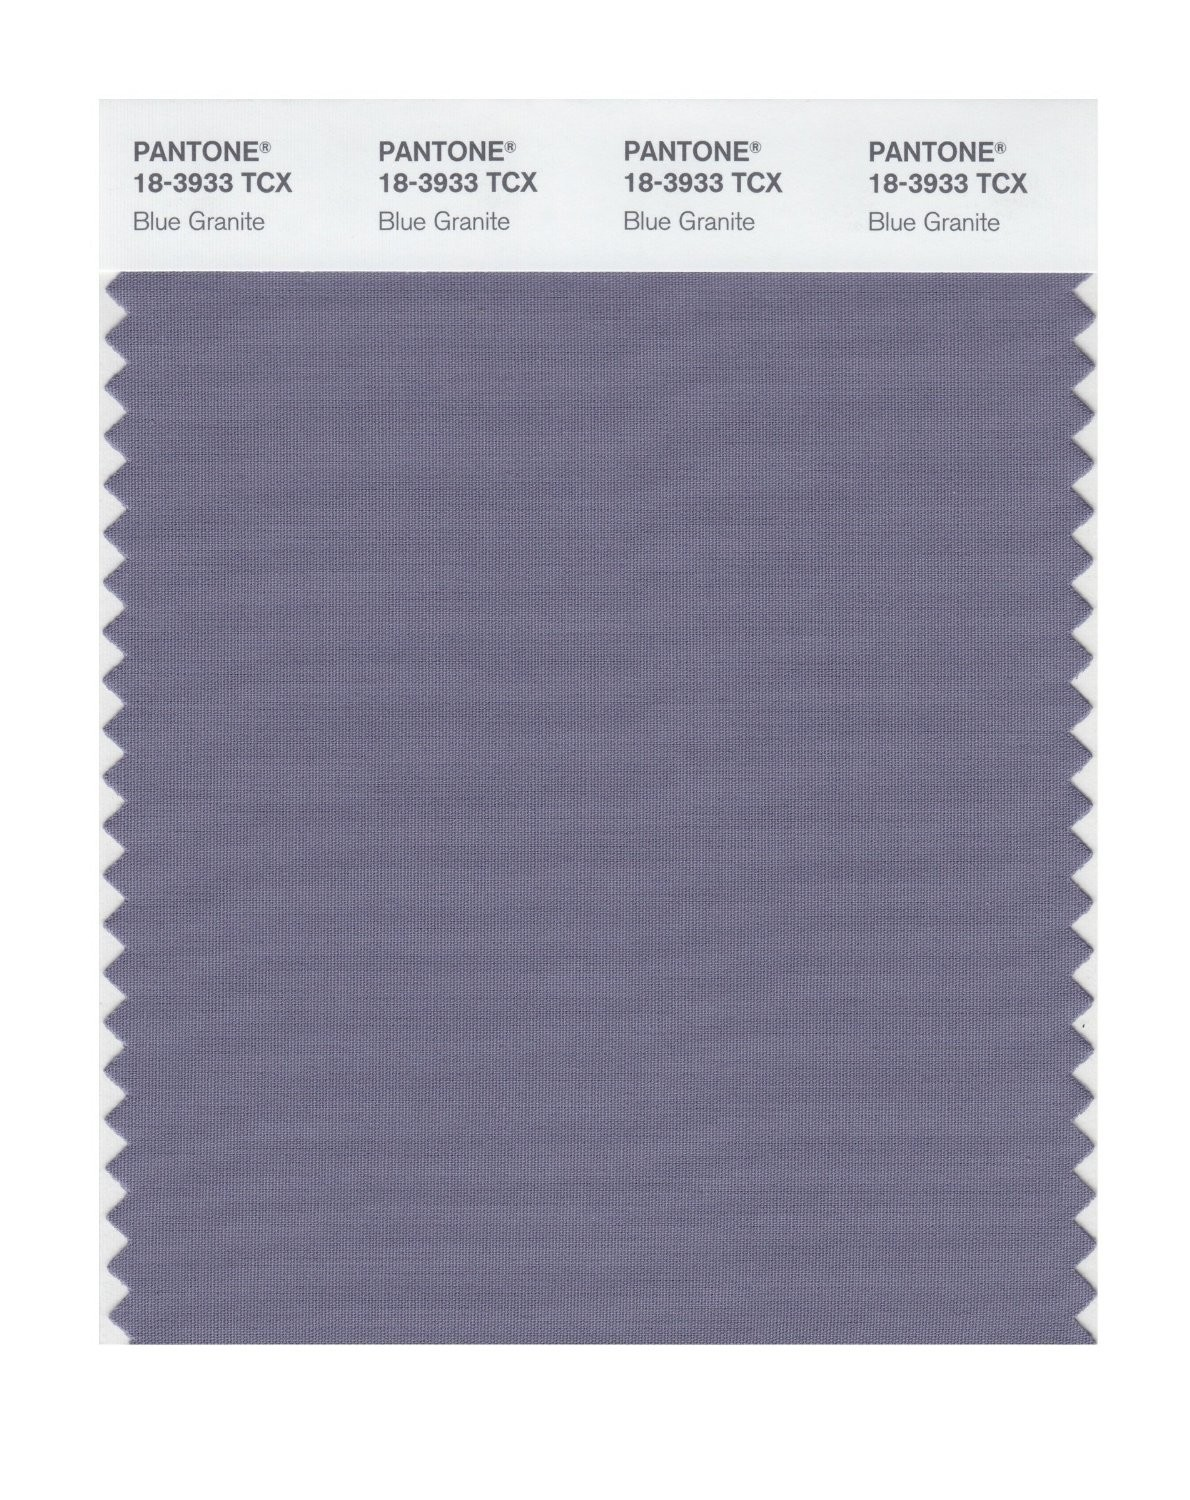 Pantone 18-3933 TCX Swatch Card Blue Granite